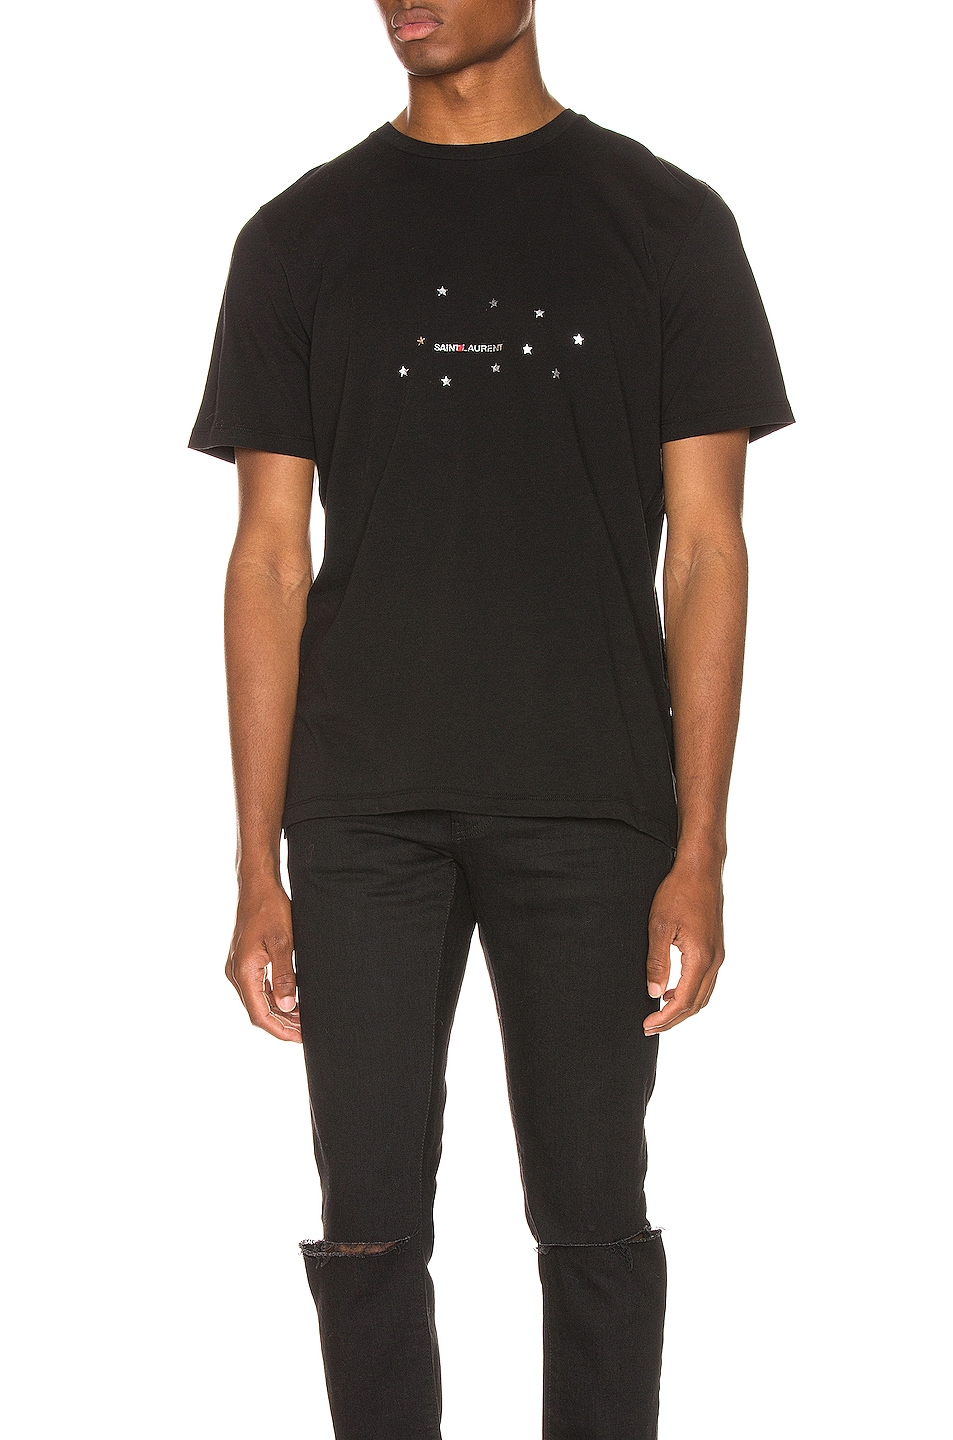 Image 1 of Saint Laurent Star Logo Tee in Black & Silver